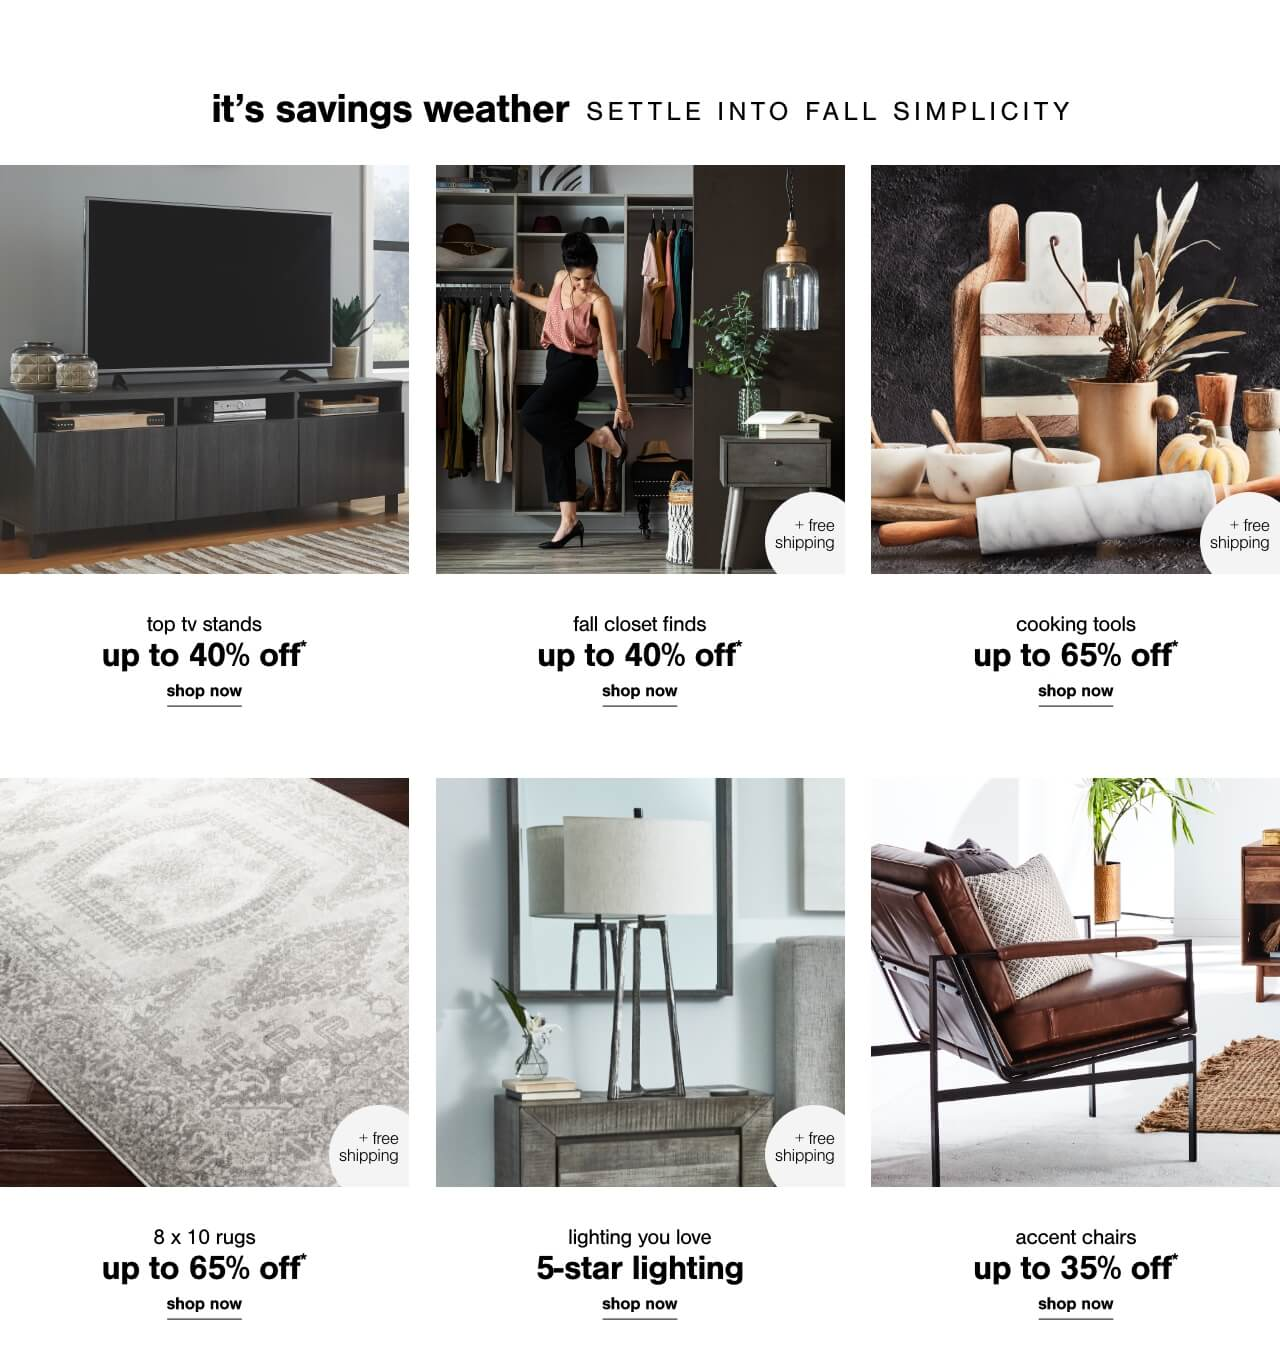 Top TV Stands Up to 40% Off ,Sofas up to 40% off,Up to 65% Off Cooking Tools + Free Shipping ,8x10s up to 65% off + Free Shipping,Lighting You Love - Shop 5 Star Lighting + Free Shipping  ,Accent Chairs Up To 35% Off-